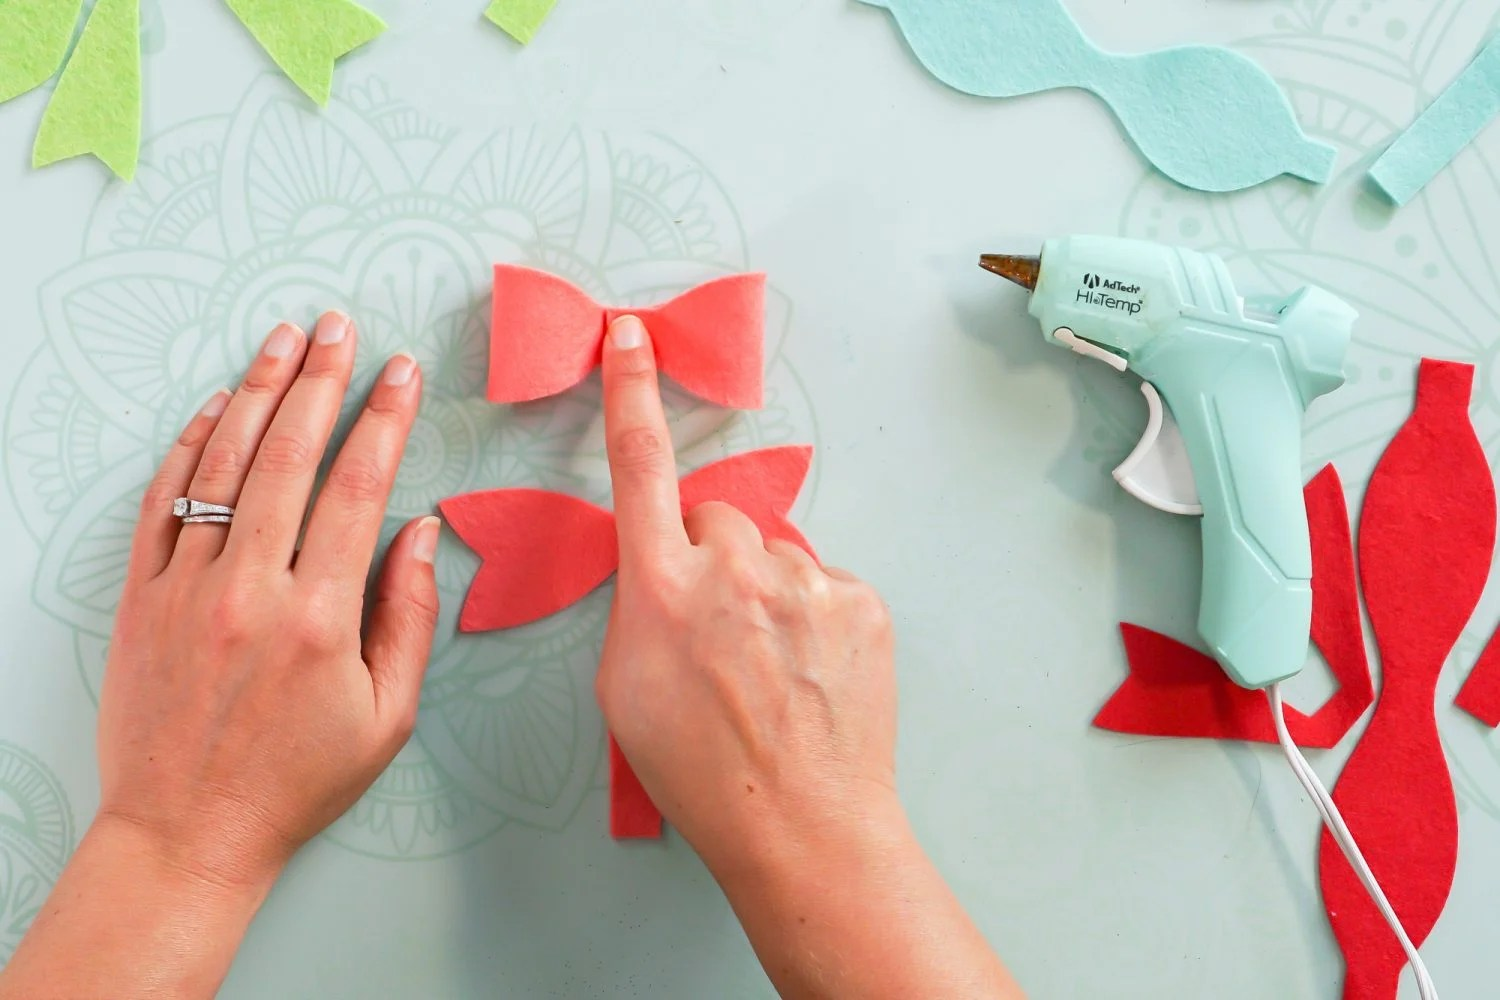 Hands gluing the bow piece together